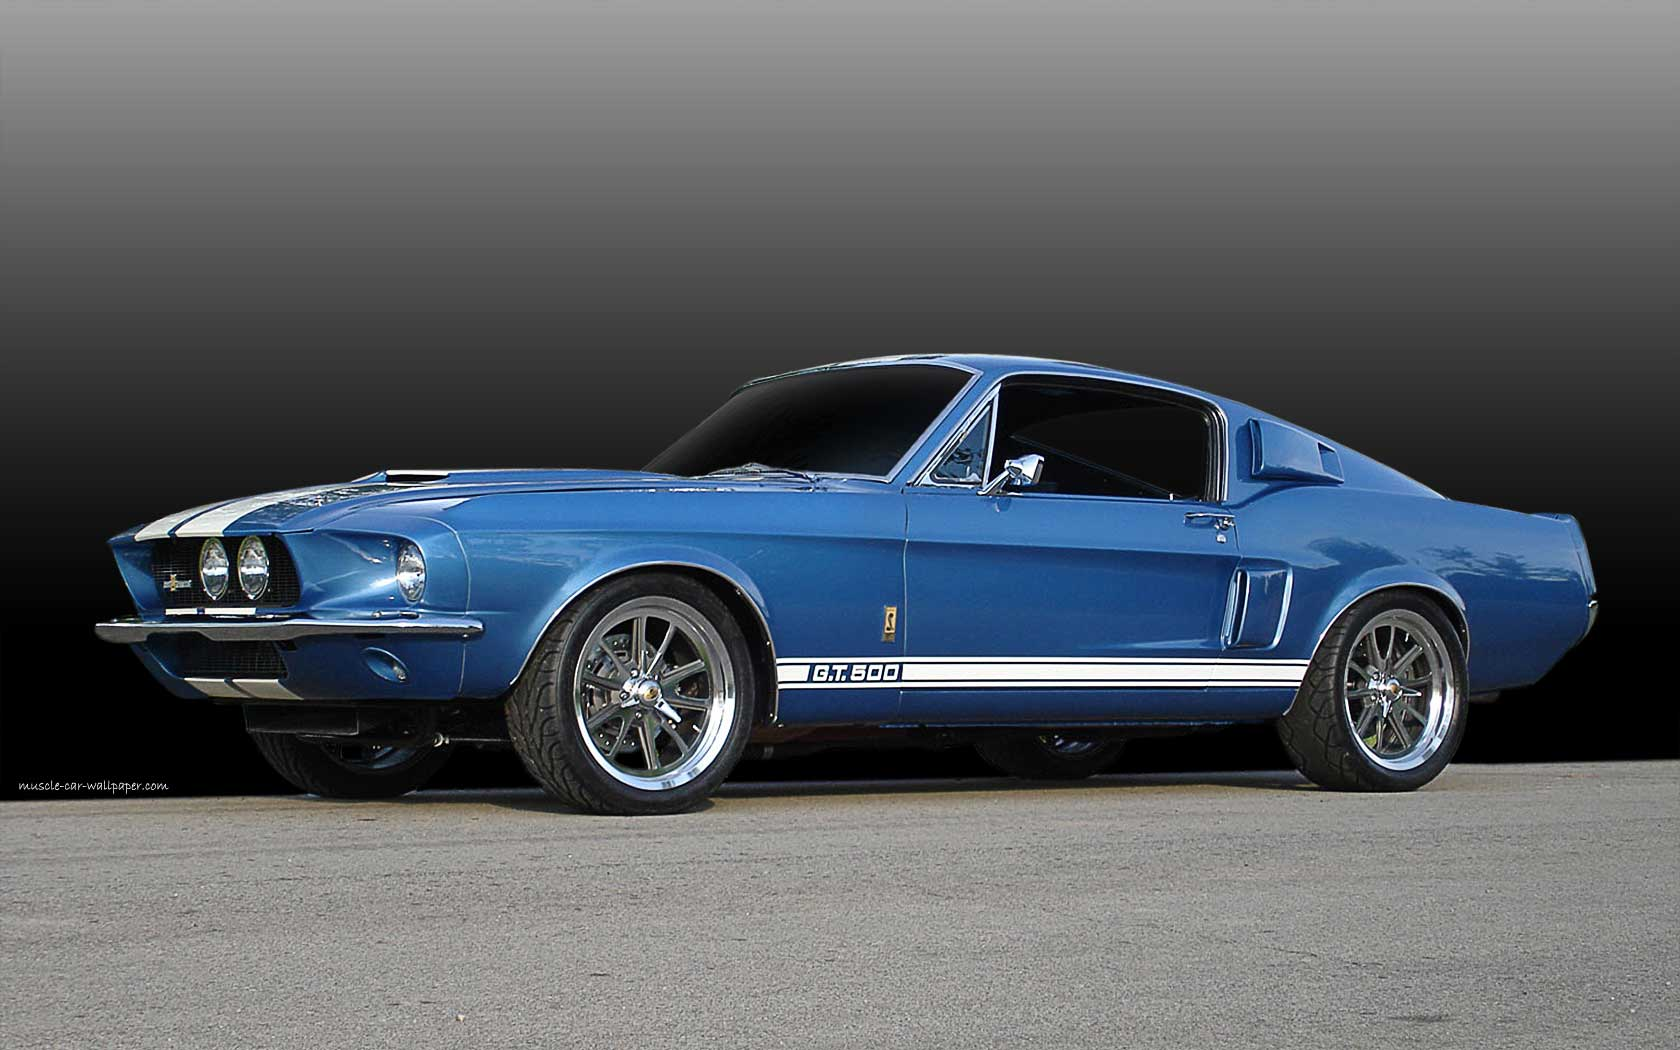 1967 ford mustang shelby gt500 muscle car wallpaper 1680 07 1680x1050